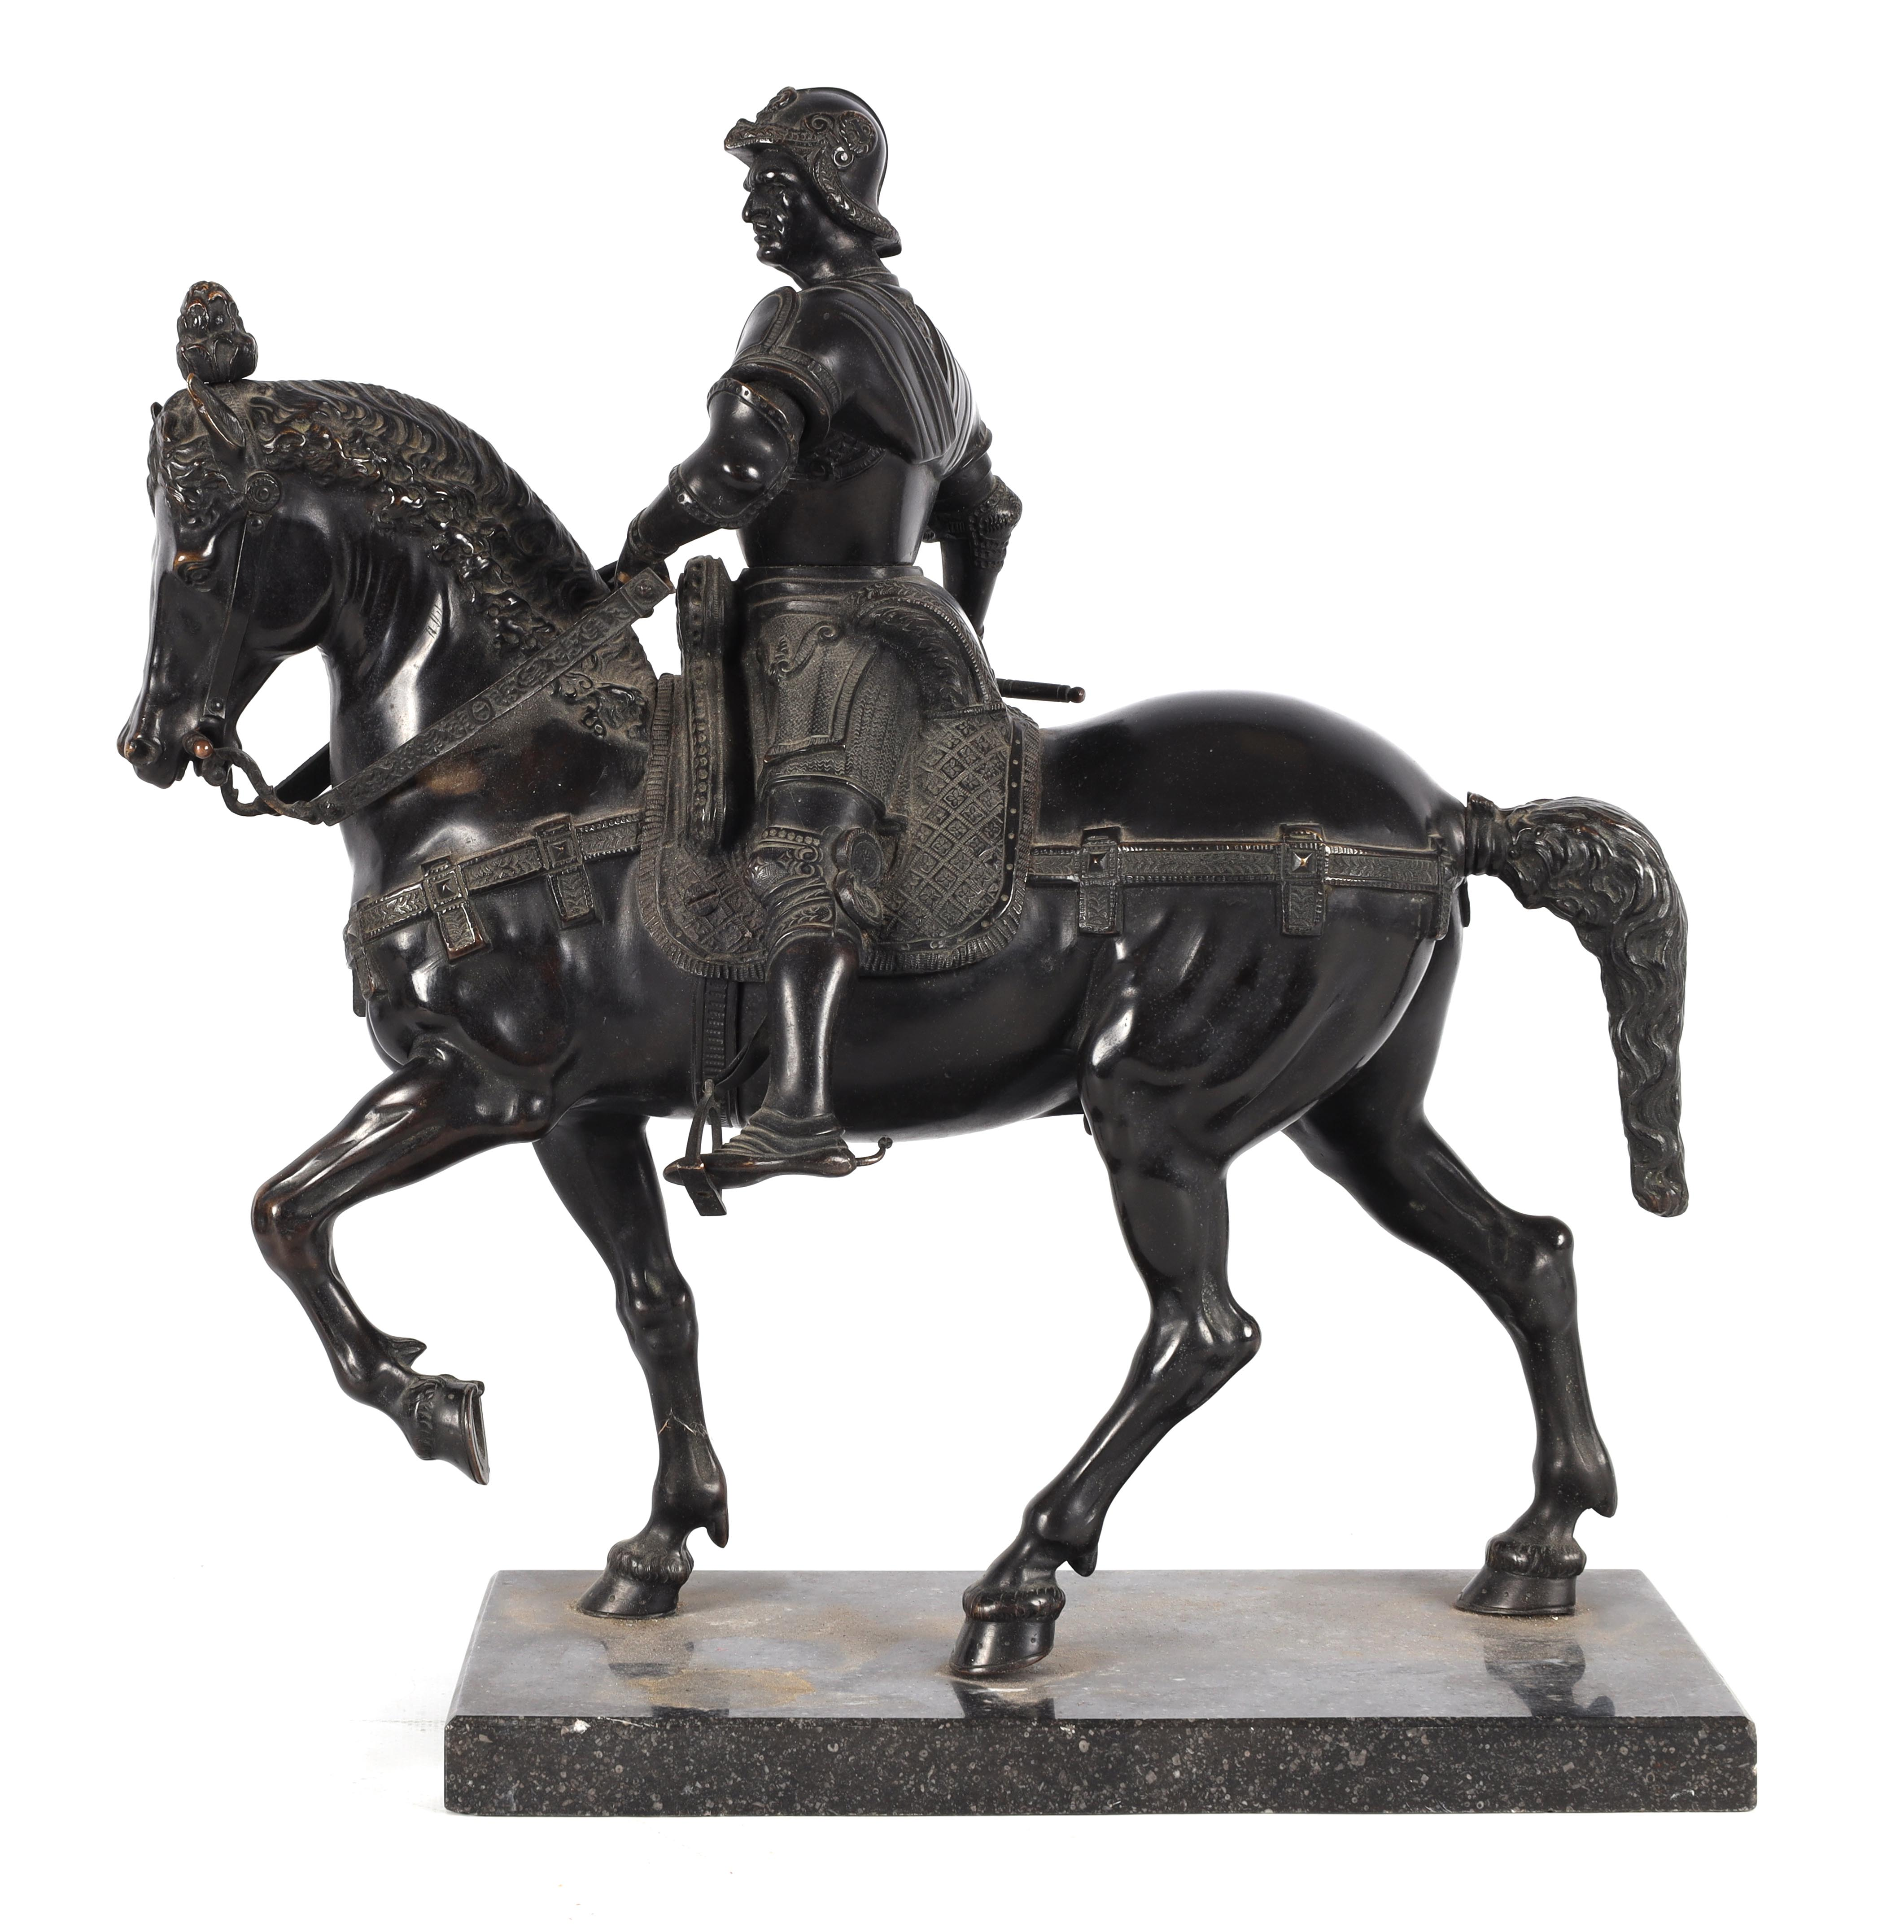 A LATE 19TH CENTURY PATINATED BRONZE EQUESTRIAN SCULPTURE modelled as a Knight on horseback of - Image 3 of 8